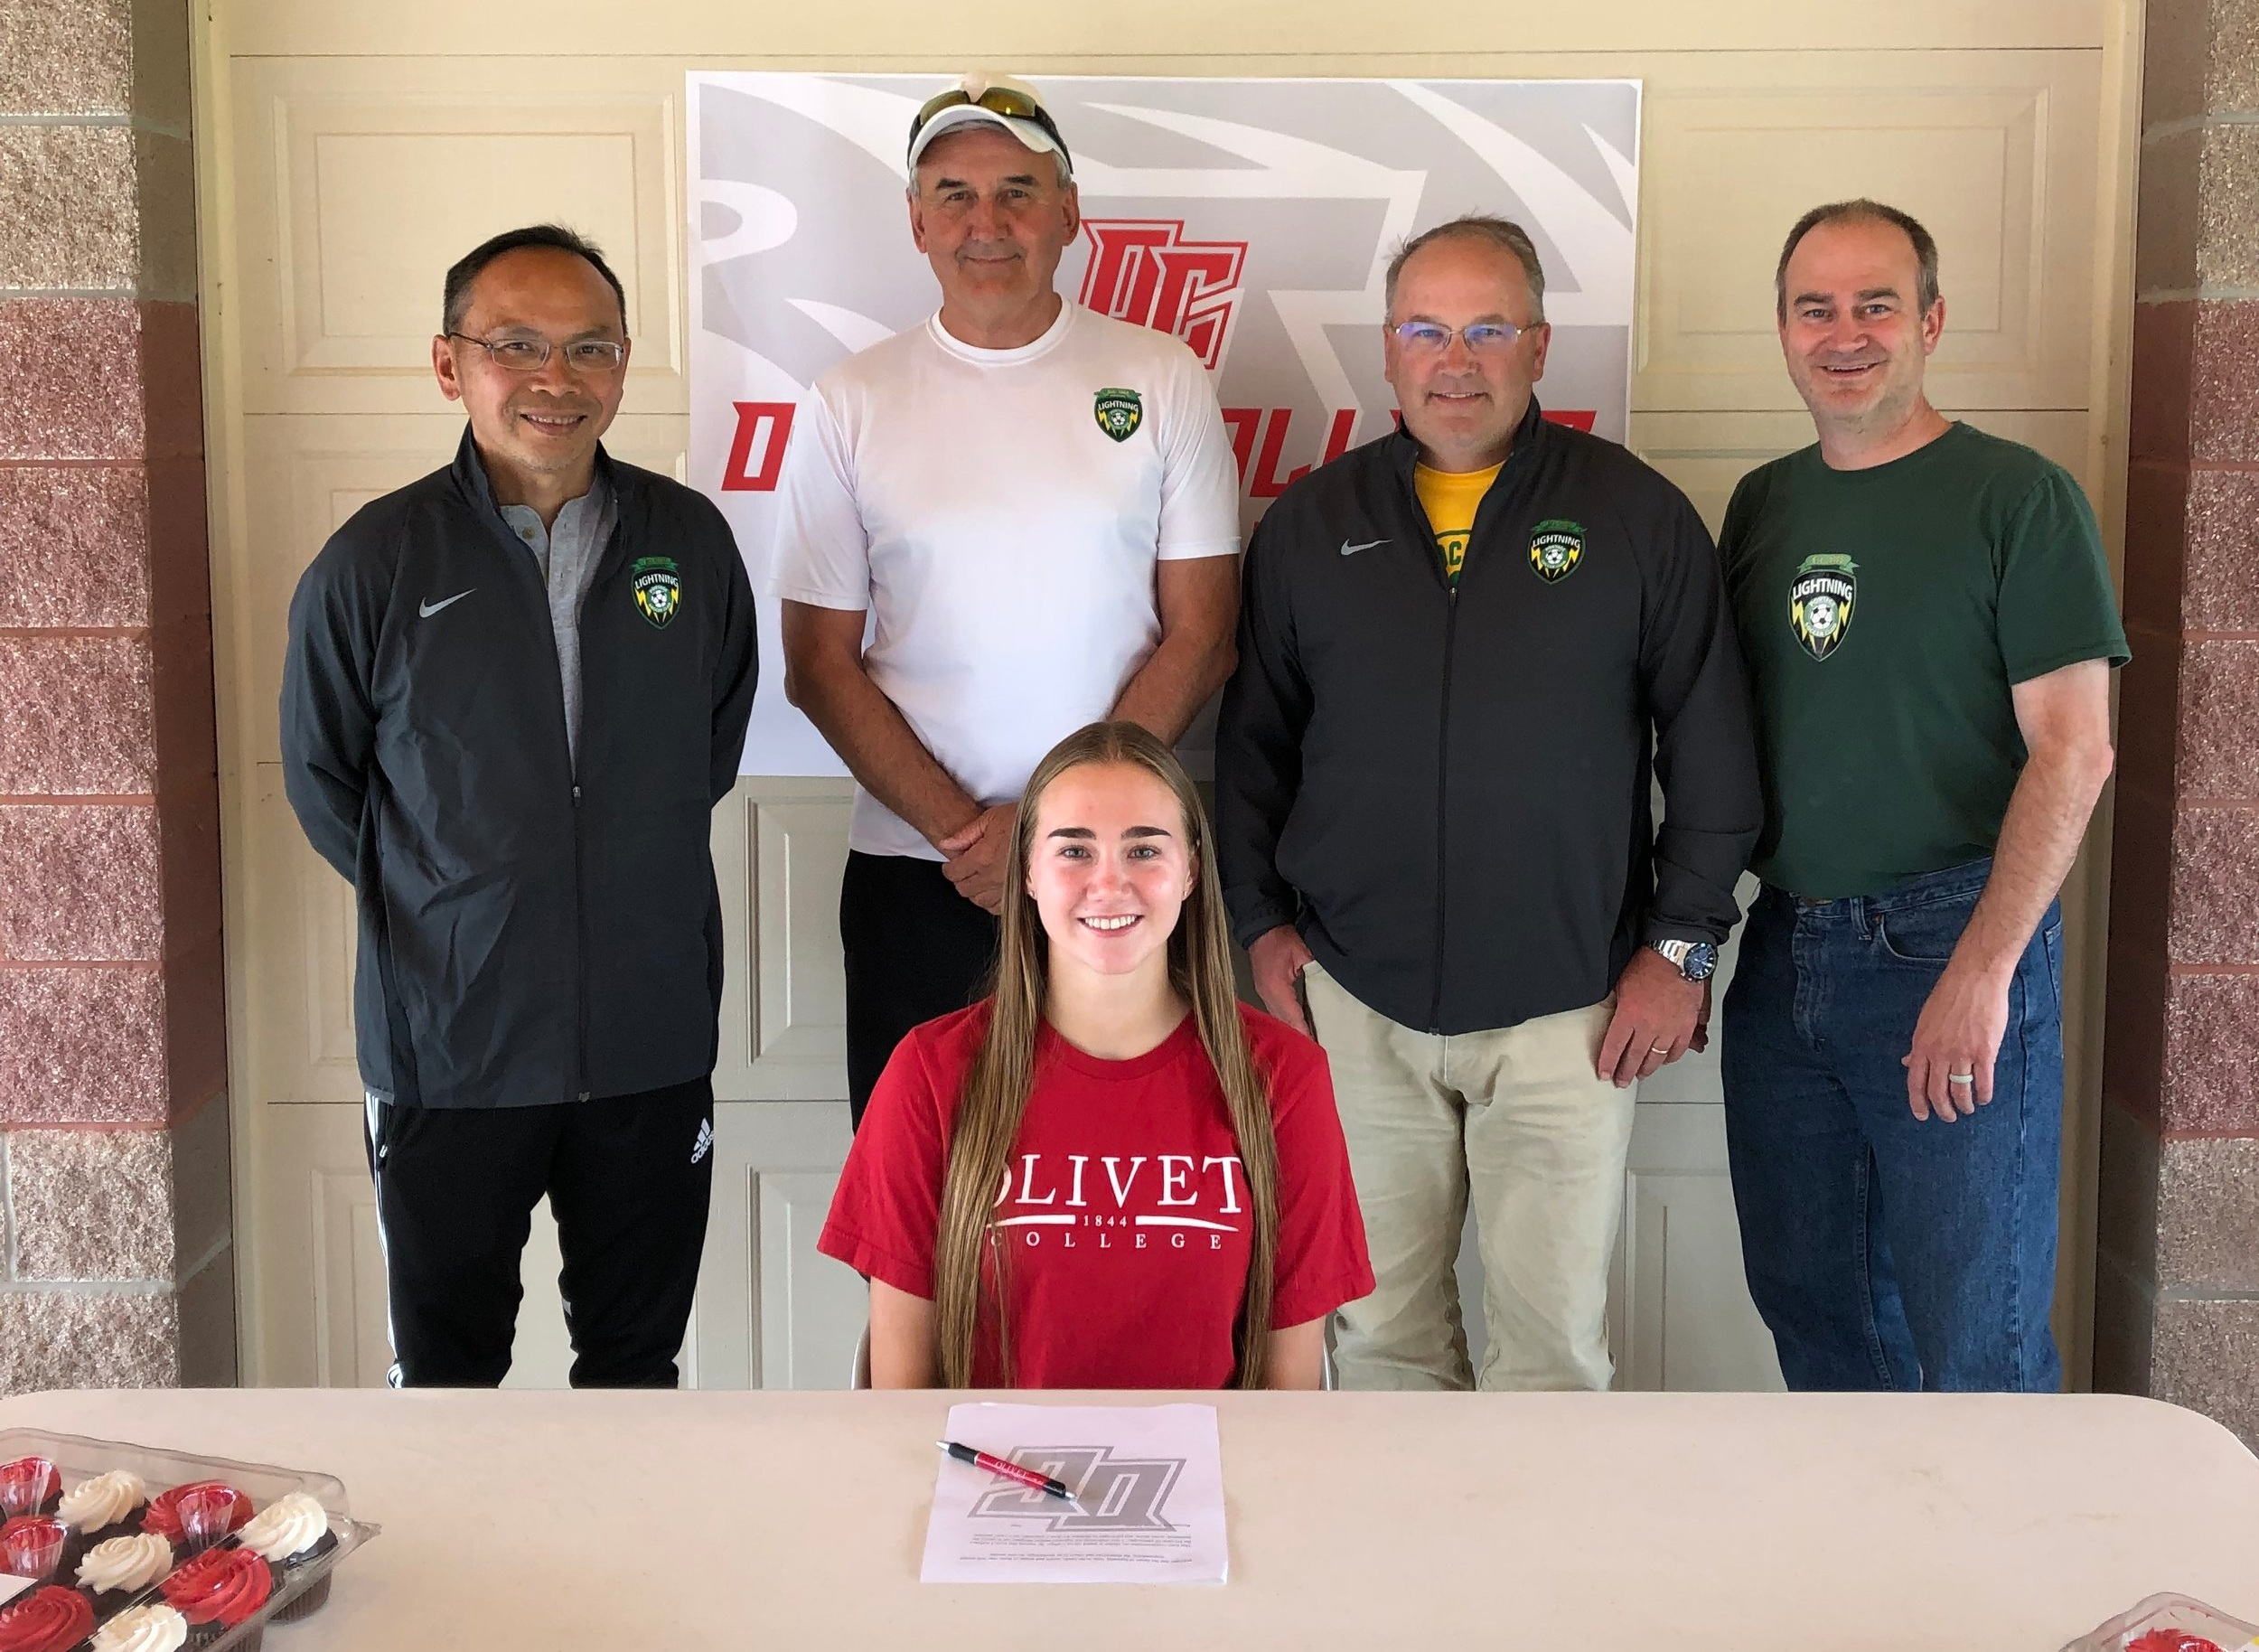 Mary Mitchell, PSC 01 Green Girls Team, signing ceremony for Olivet College